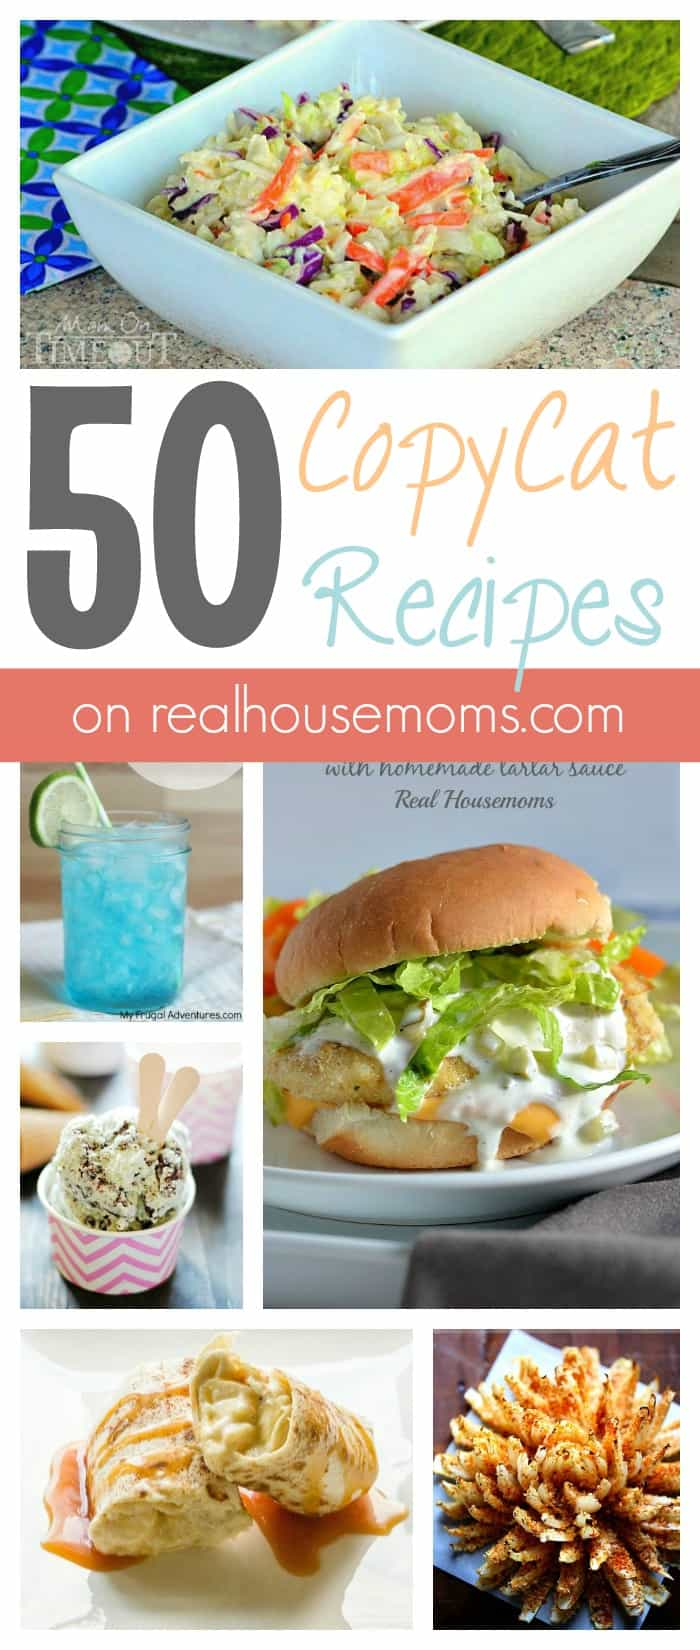 50 CopyCat Recipes on realhousemoms.com